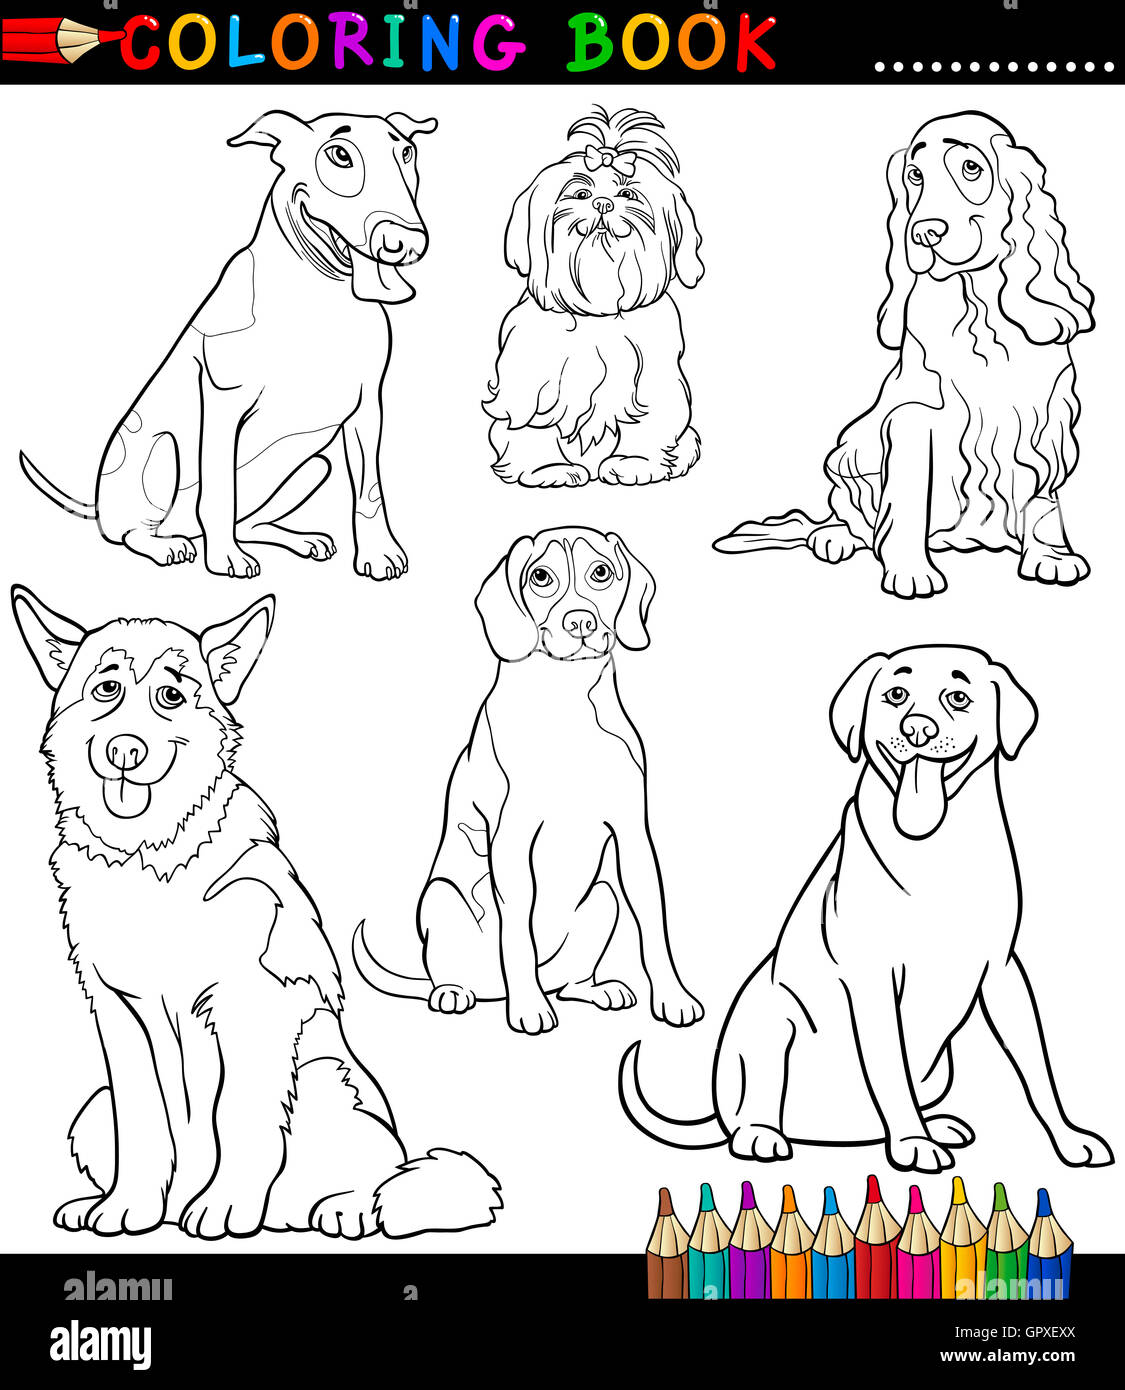 Cartoon Dogs or Puppies Coloring Page Stock Photo: 117367122 ...